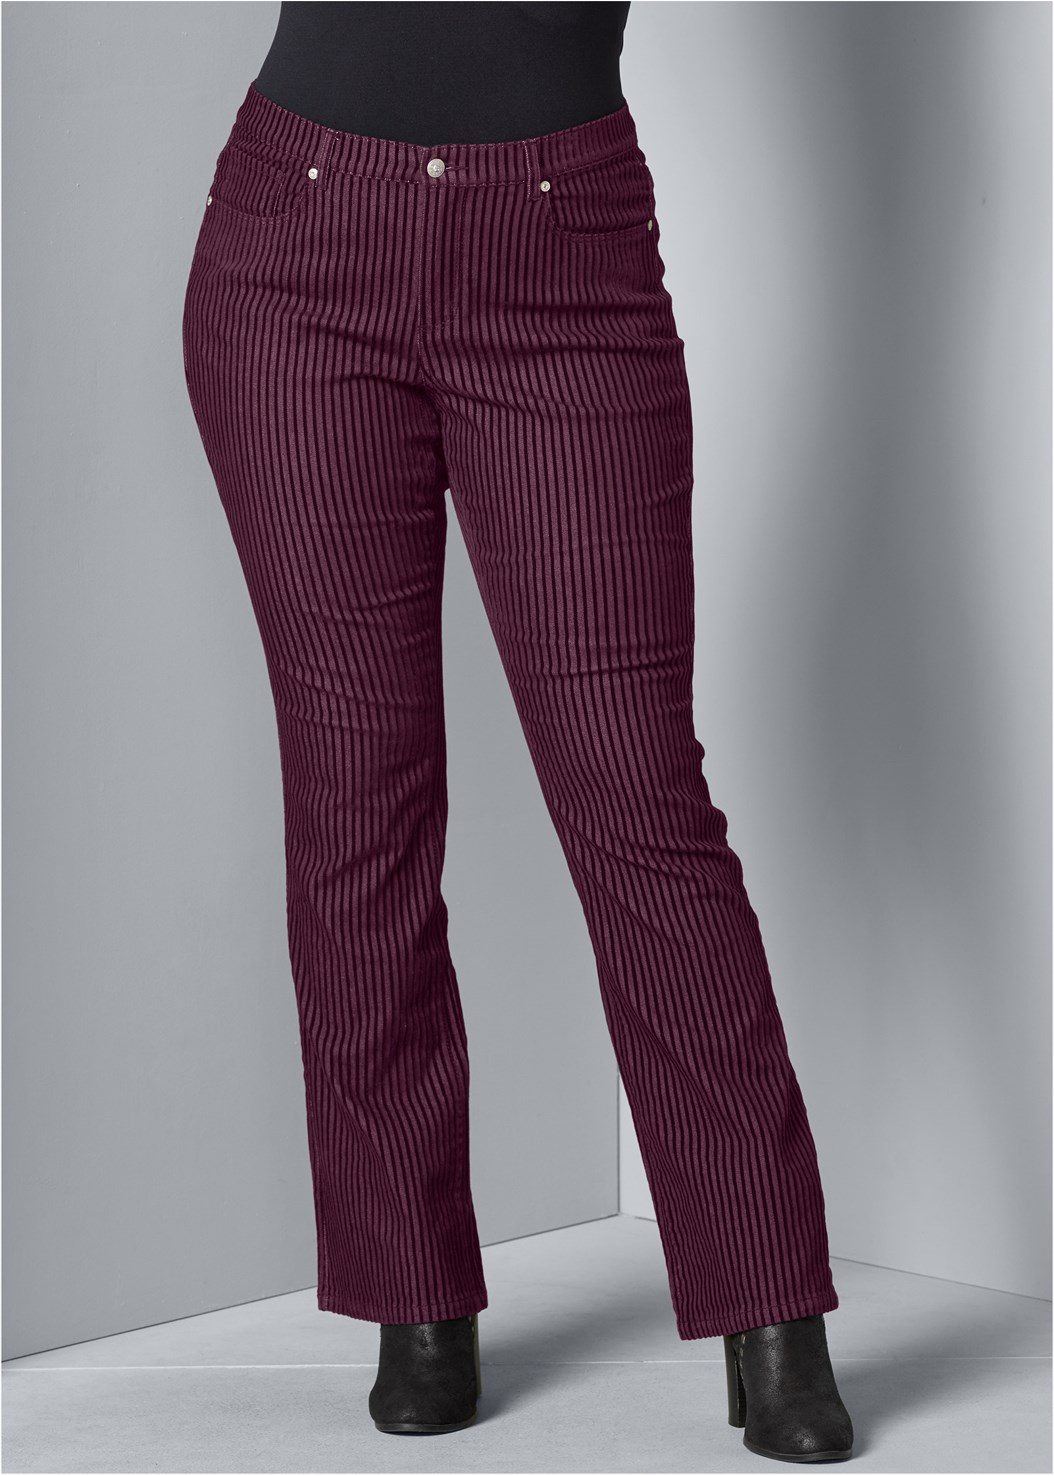 Velvet Stripe Pants,Surplice Side Tie Top